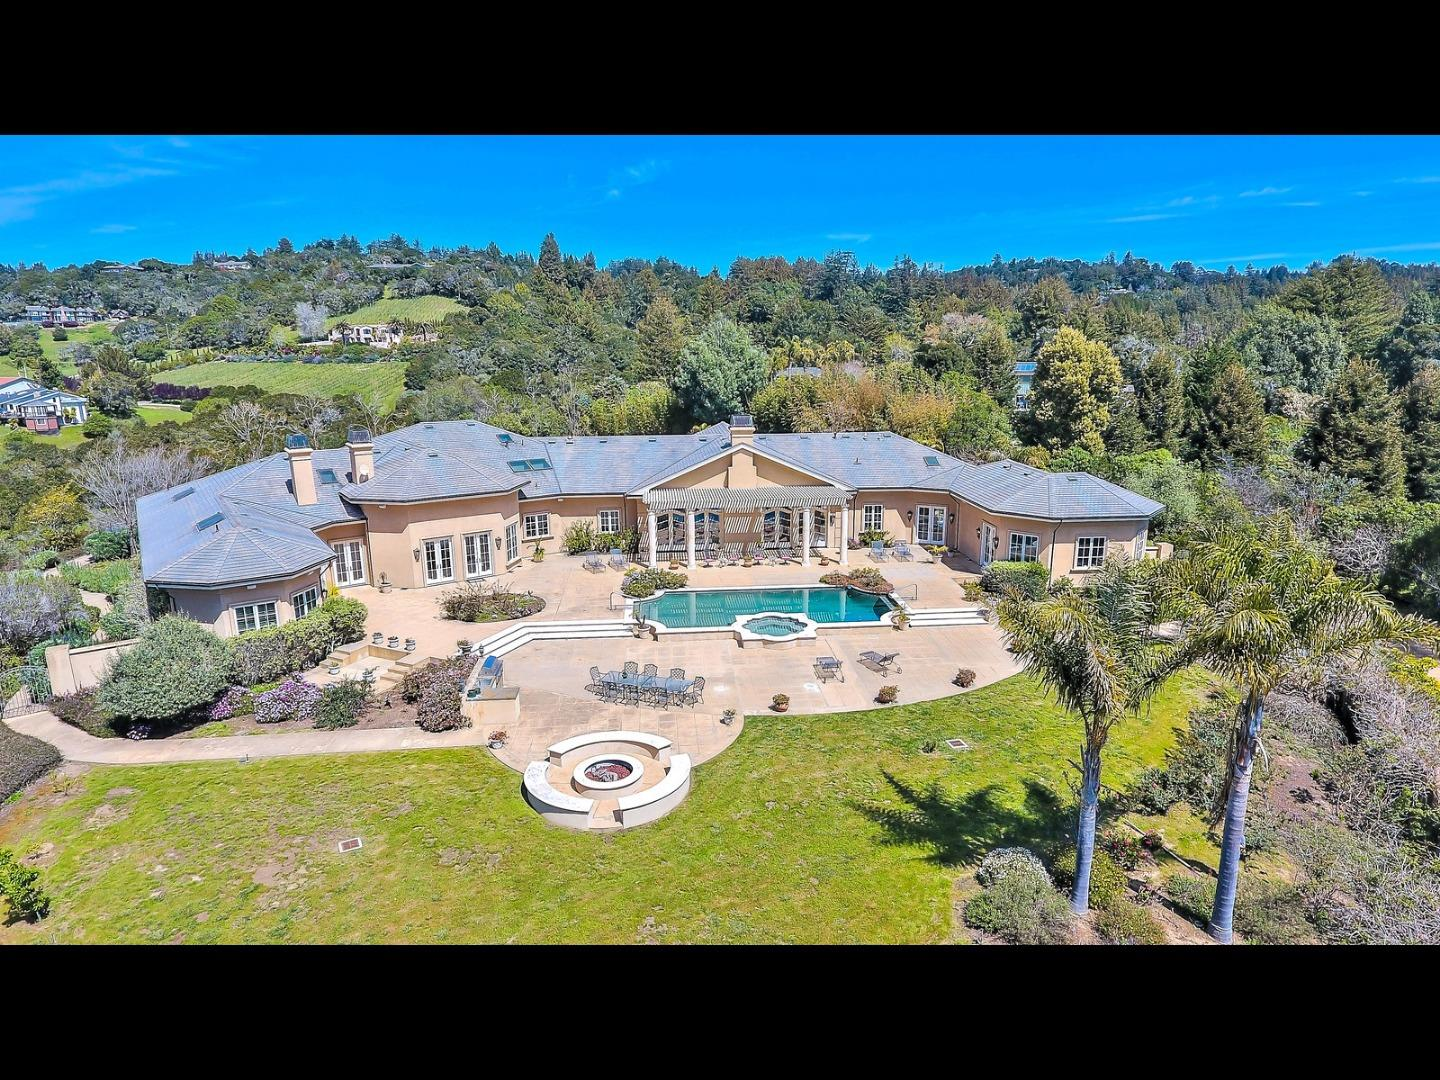 LUXURIOUS GATED ESTATE nestled in the prestigious hills of Aptos. Approximately 7,260 sf, almost 2.5 acres of elegant grounds, breathtaking views and privacy is ideally situated between Carmel and Silicon Valley. *3 master bedroom suites + separate office* All suites w/ their own private setting* Inside the architectural details prevail: Imported marble* silk wall coverings* vaulted, coffered & arched ceilings* Wainscoting *ornate moldings* majestic pillars* gleaming skylights* Gourmet kitchen: custom cabinetry, Wolf cooktop, Sub Zero refrigerator, and so much more* Butlers pantry w/ 300+ bottle temp controlled wine cellar* Grand master bedroom suite features 2 marble bathrooms* Vantage lighting & sound system* Pebble Tec pool & spa, expansive terrace, outdoor kitchen & more views* Long private drive w/ 6 car garage* Minutes to restaurants, shopping and beaches.  SELLER MAY CONSIDER RESIDENTIAL/COMMERCIAL TRADES